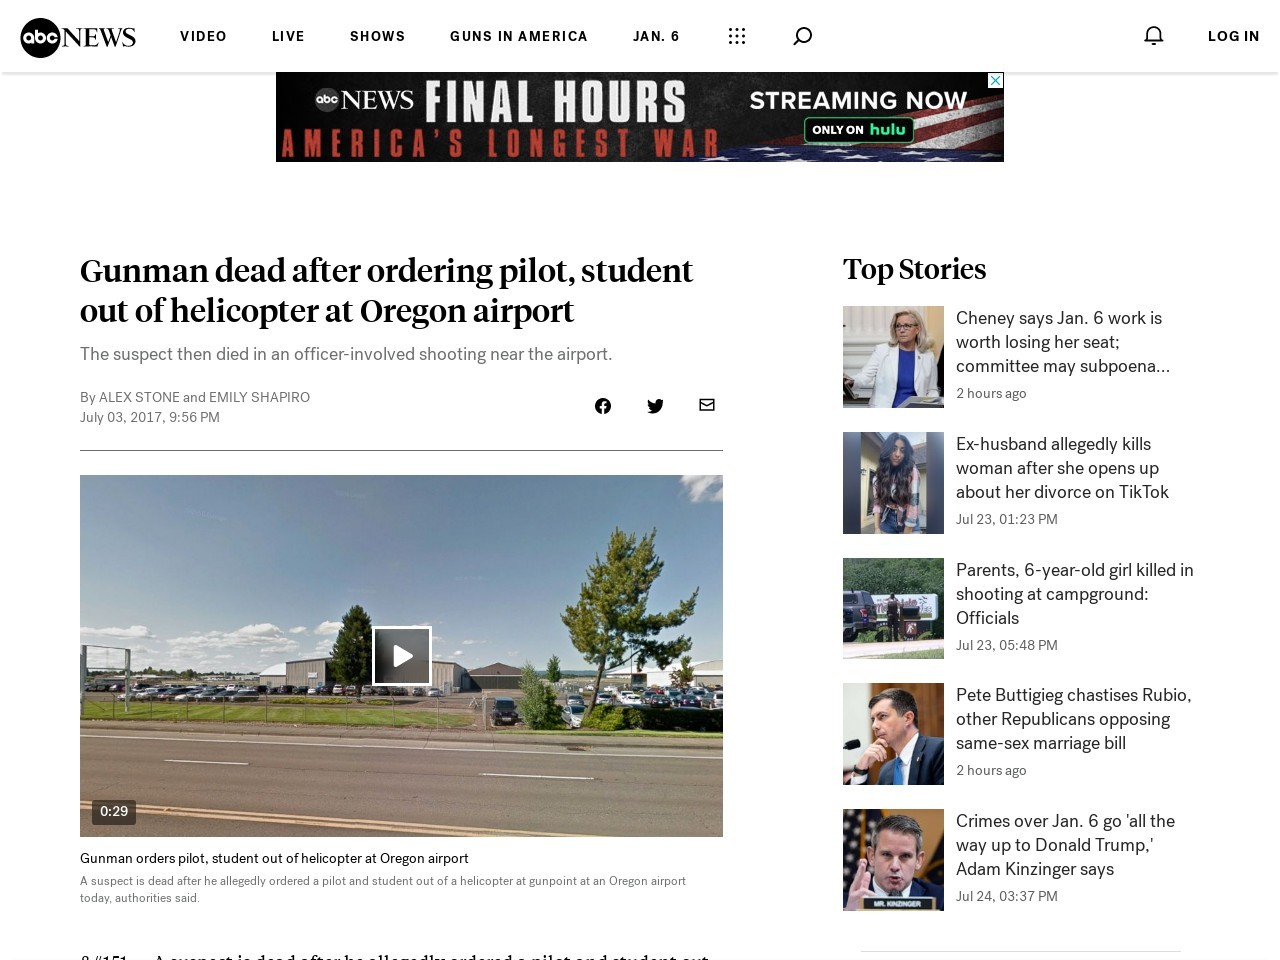 Gunman orders pilot, student out of helicopter at Oregon airport